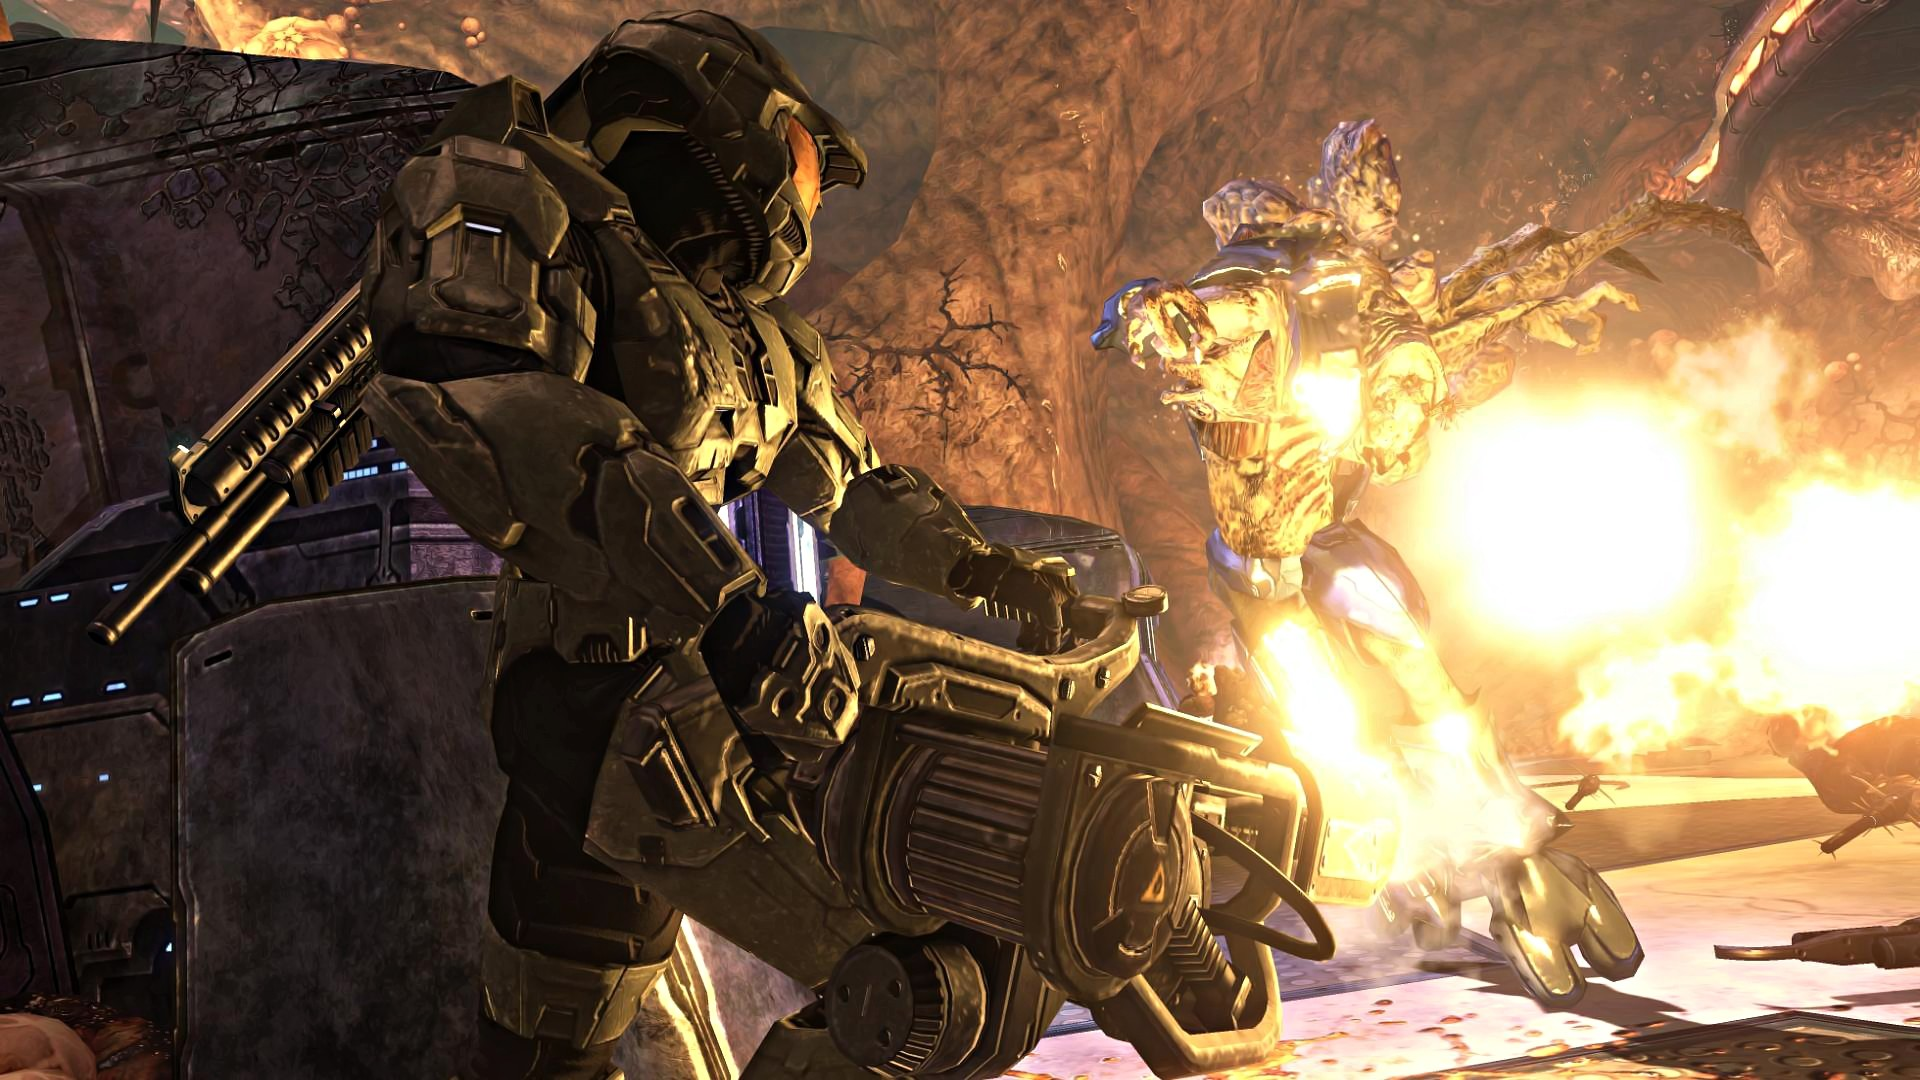 1920x1080 Image - Halo-3-Wallpaper-CORTANA-chapter-1080p-16-MASTER-CHIEF-FLAMETHROWER.jpg  | Deadliest Fiction Wiki | FANDOM powered by Wikia